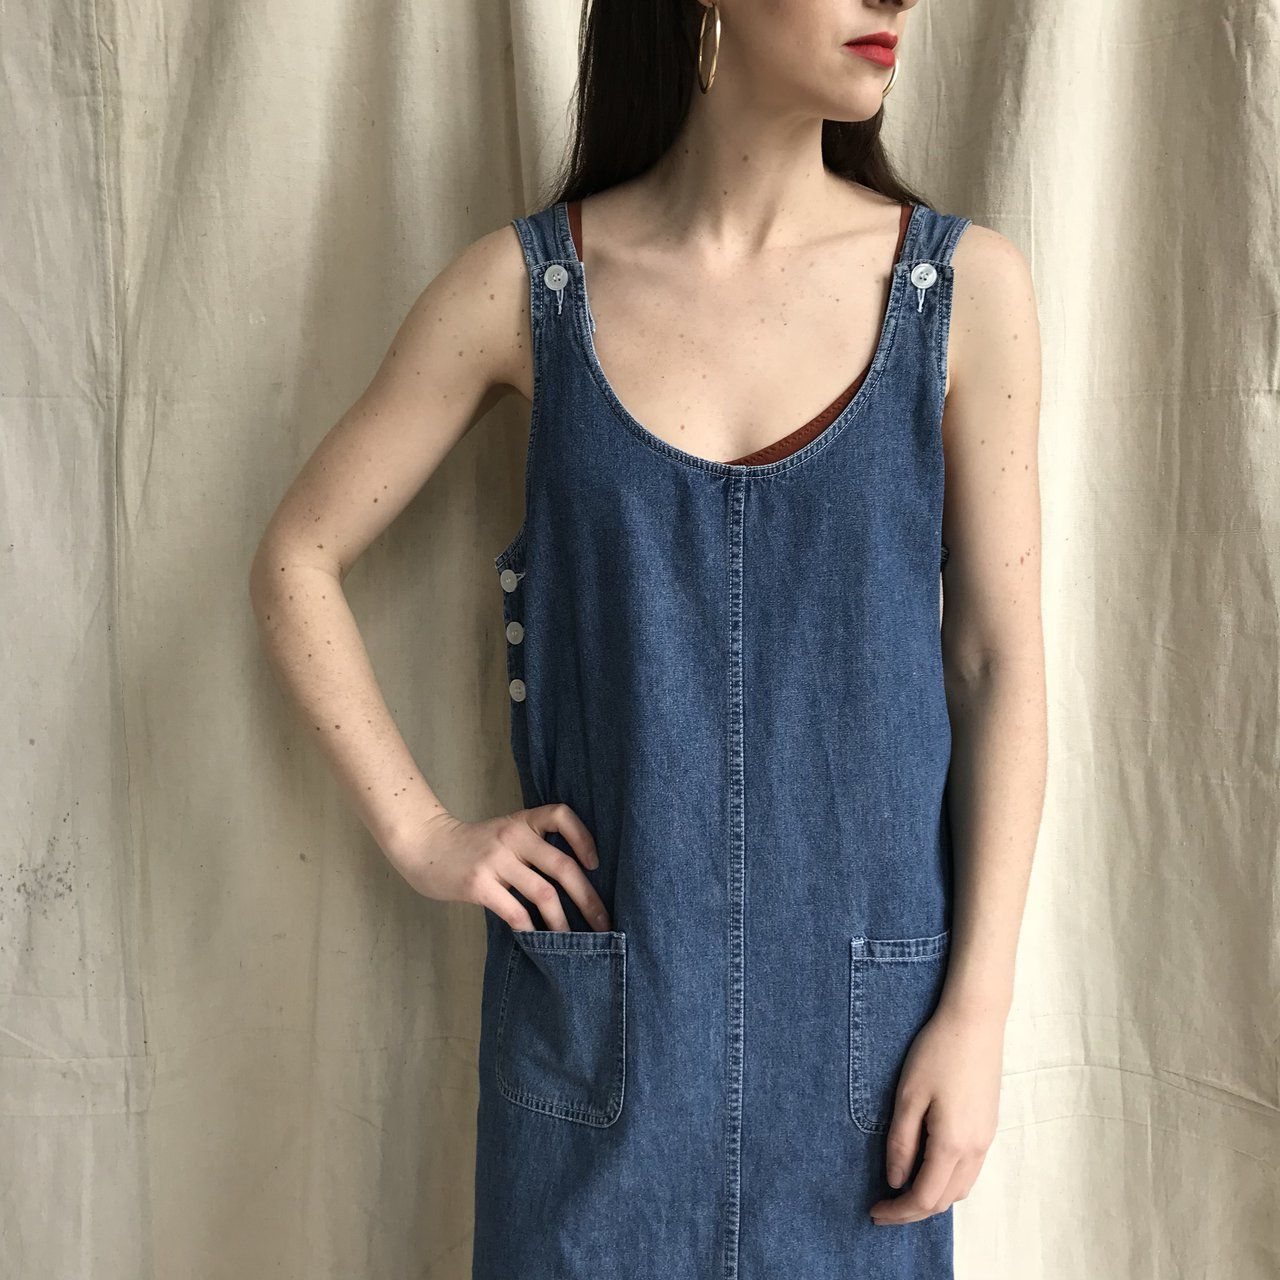 cd7dfa024dd Depop - The creative community s mobile marketplace. 90s denim mom  sundress. Overalls style.